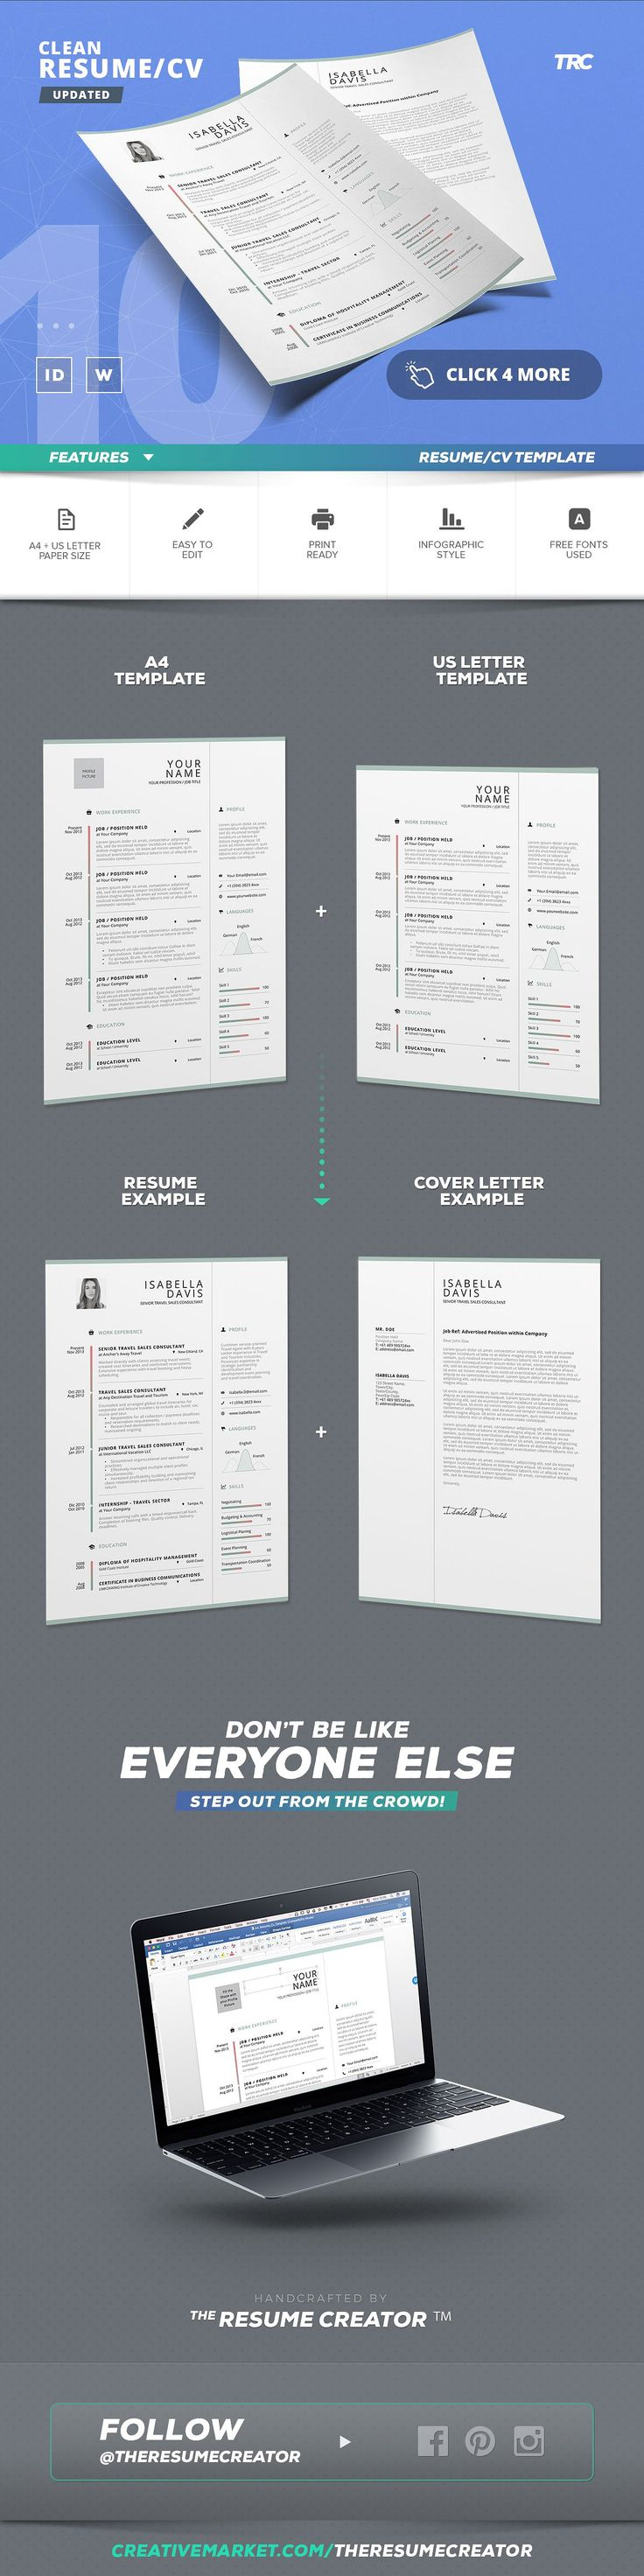 example objectives for resumes%0A Clean Resume Cv Template Volume    by TheResumeCreator on  creativemarket